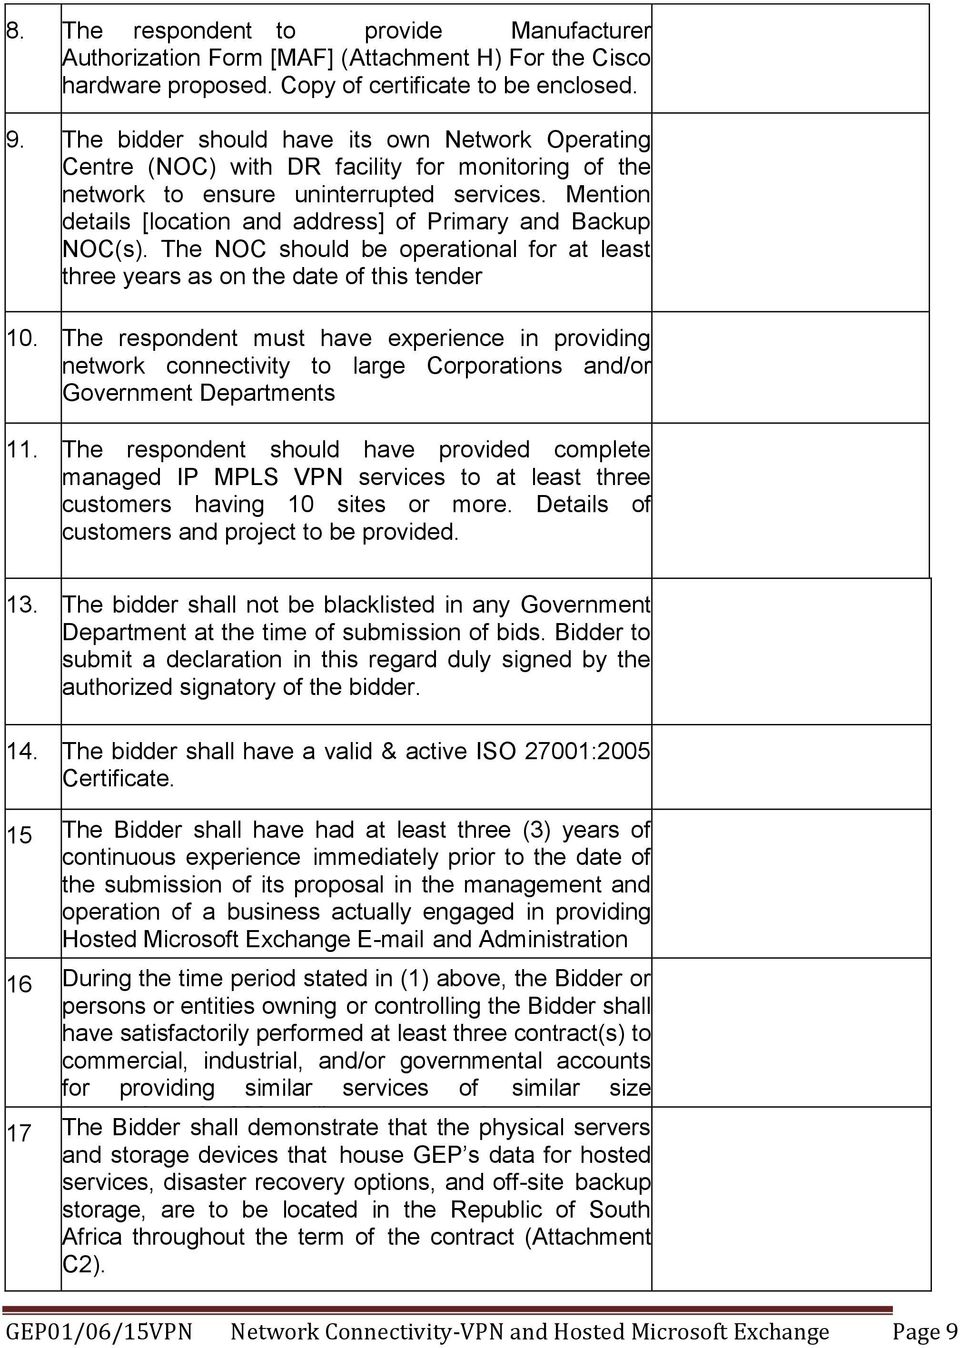 Mention details [location and address] of Primary and Backup NOC(s). The NOC should be operational for at least three years as on the date of this tender 10.